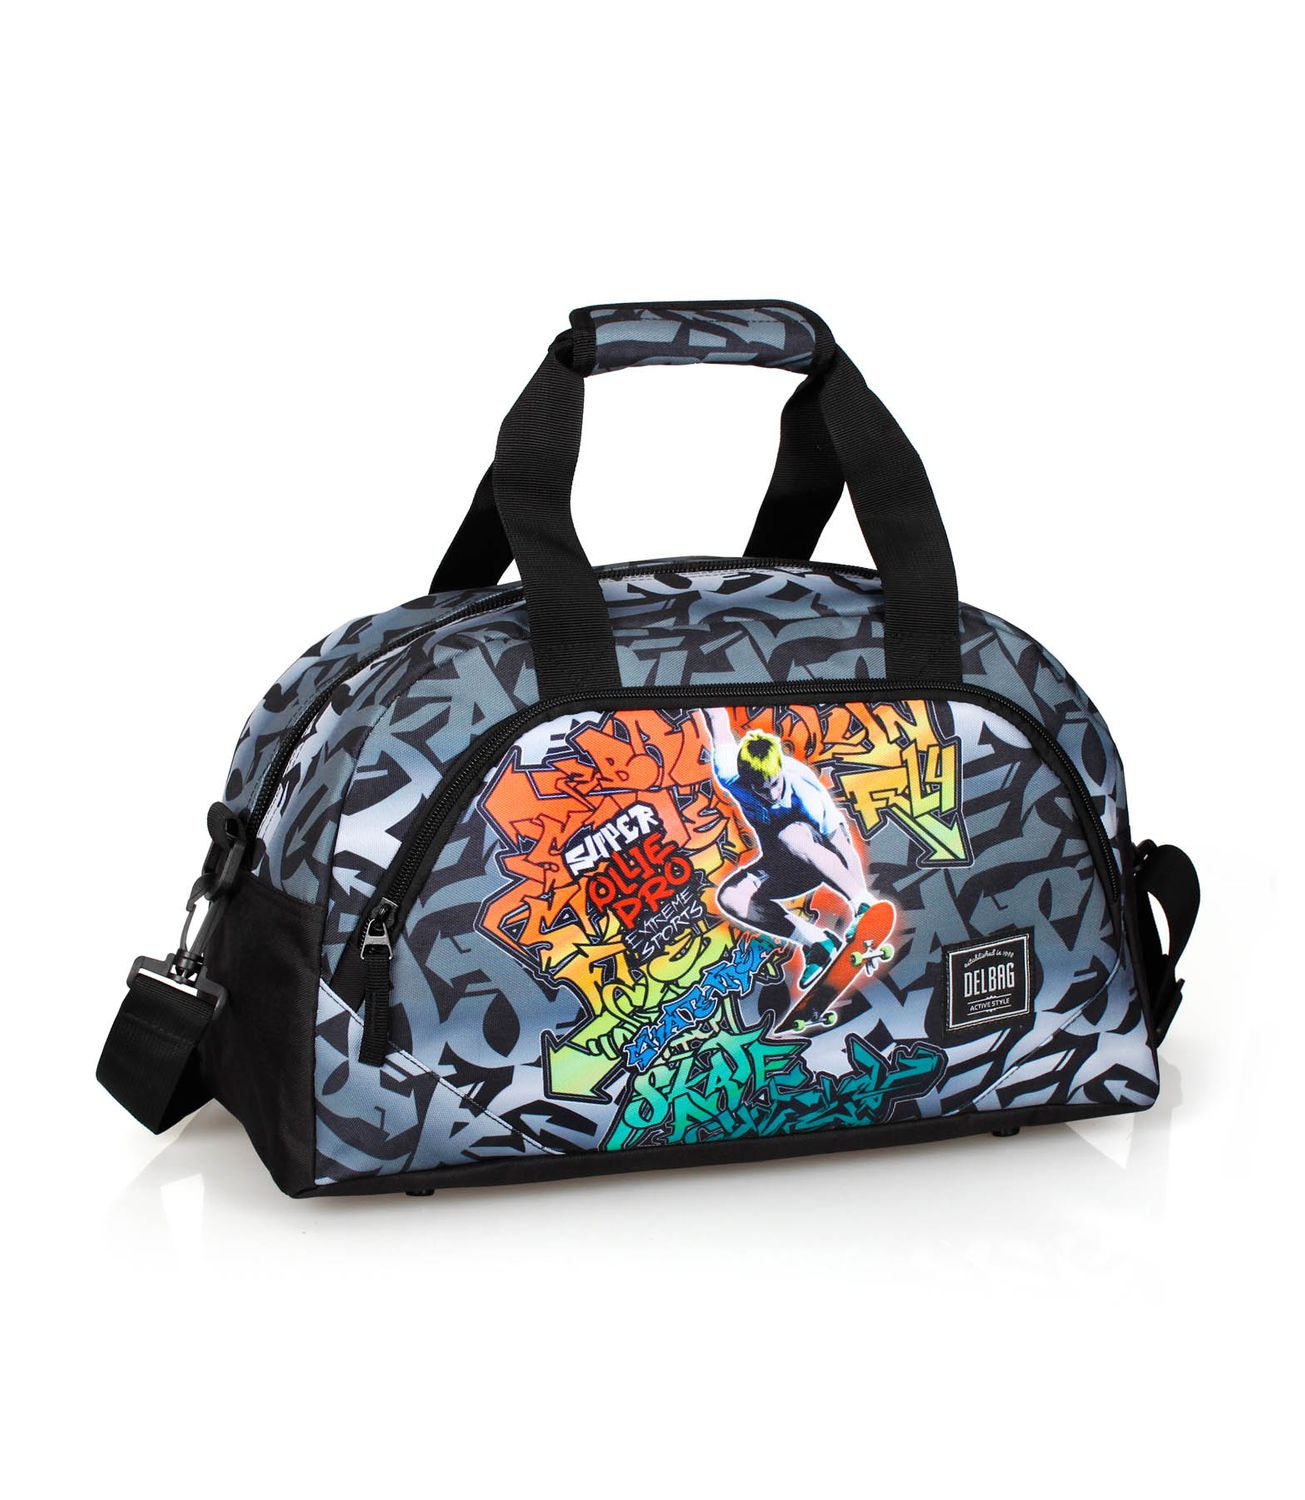 Holdall Travel Bag GRAFFITI SKATE – image 1